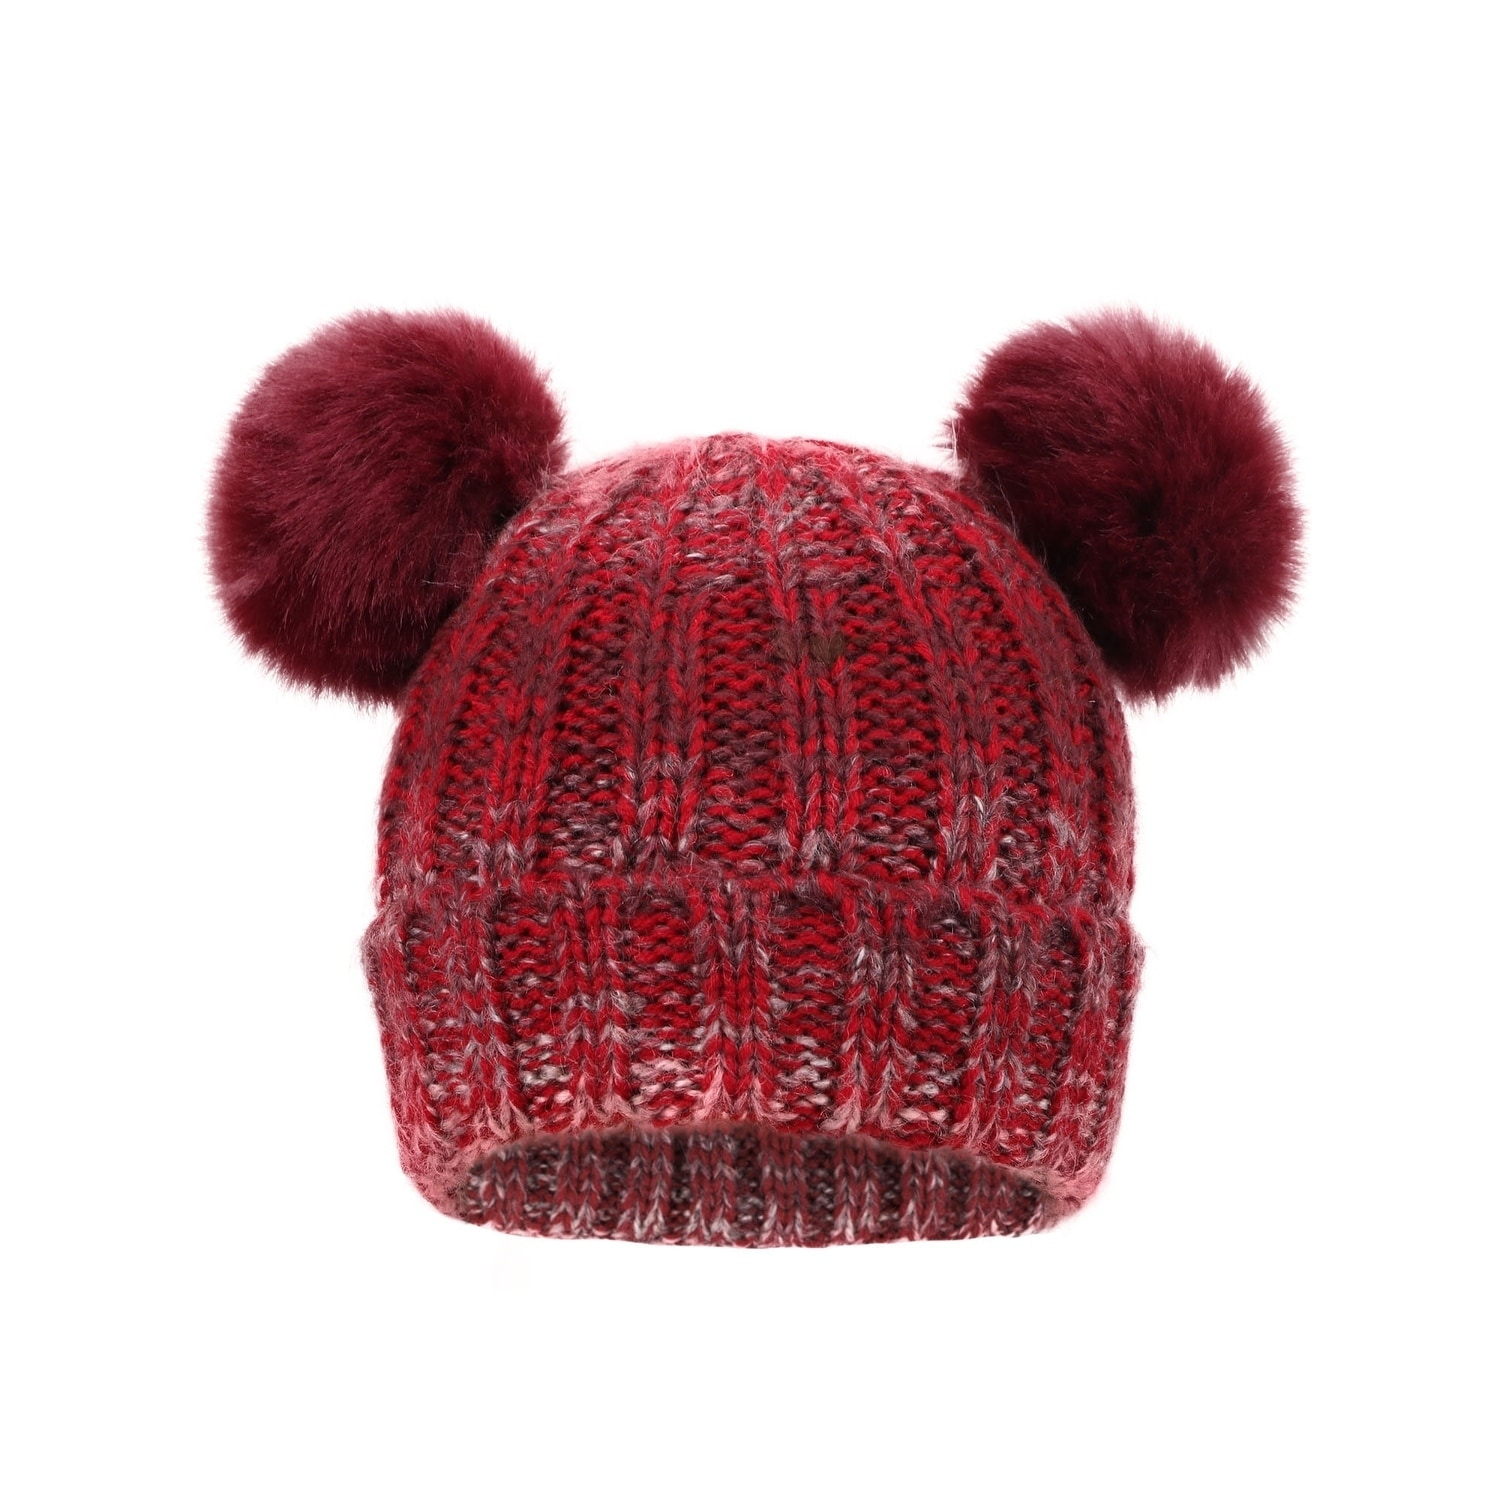 b240c2a11efb1b Shop Children's Cable Knit Ombre Beanie Pompom Ears - Free Shipping On Orders  Over $45 - Overstock - 17638873